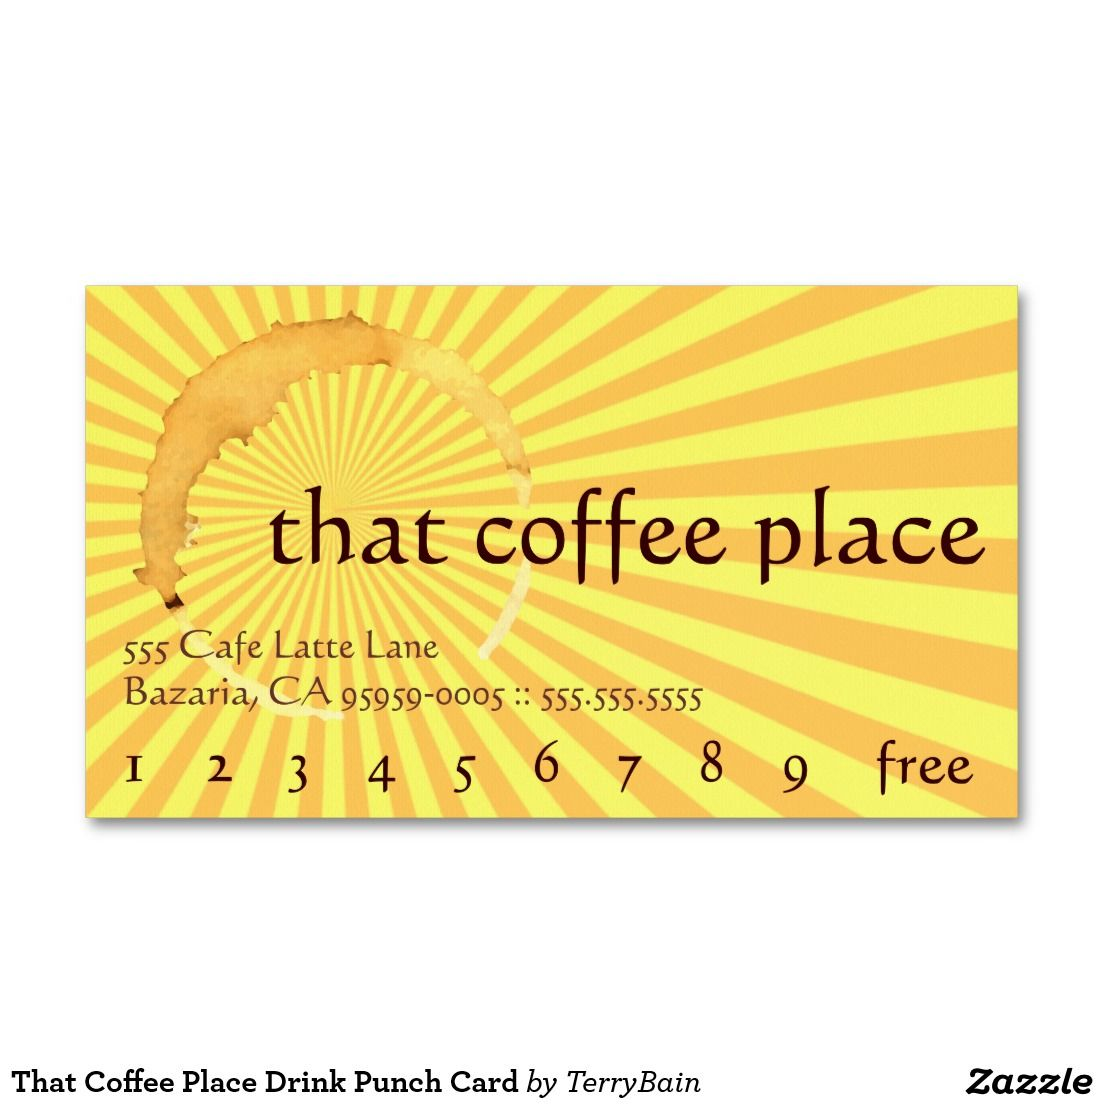 That Coffee Place Drink Punch Card Business Card   Loyal to Coffee ...